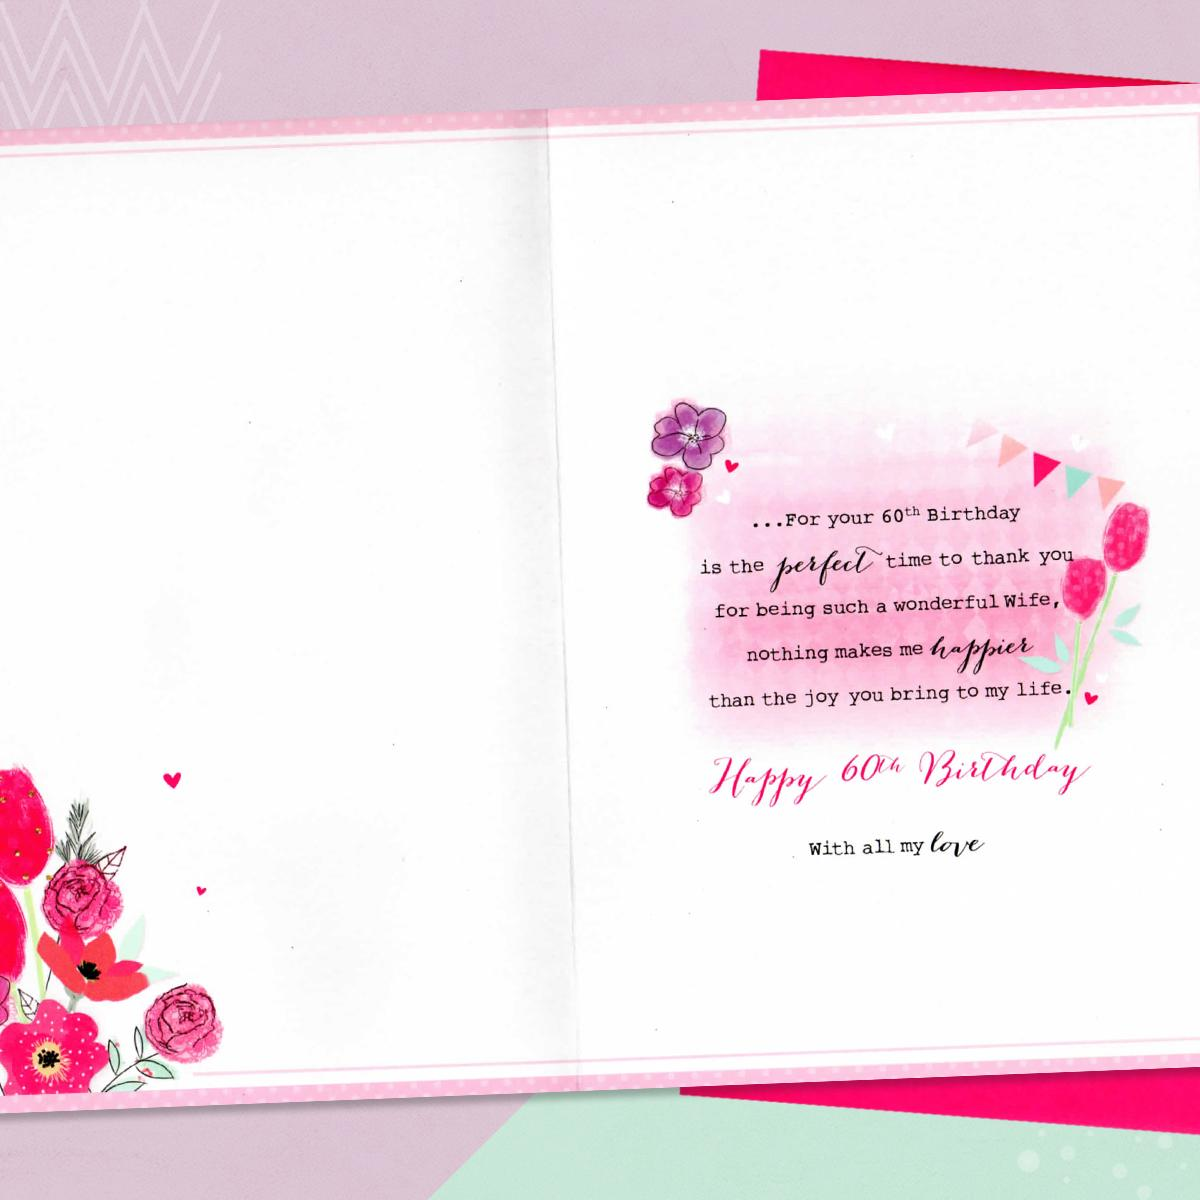 Inside Of Age 60 Wife Birthday Card Showing Layout And Printed Text